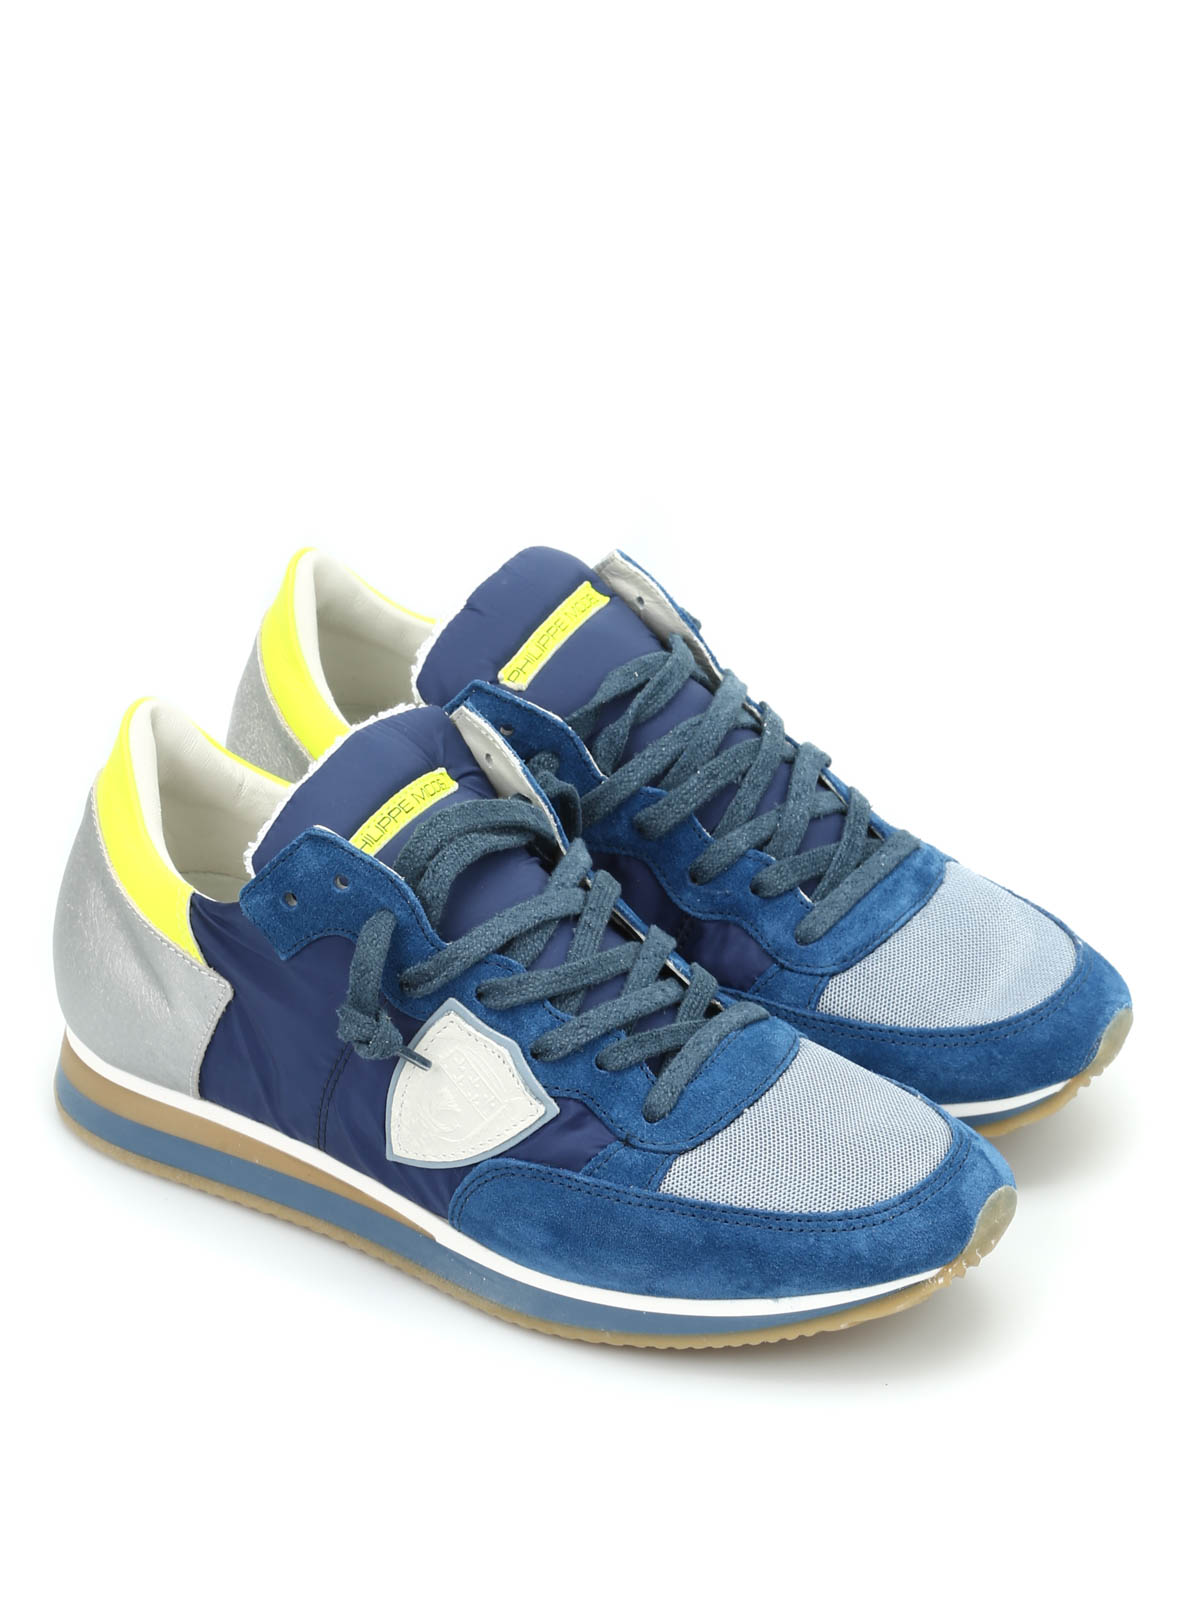 tropez world running sneakers by philippe model trainers ikrix. Black Bedroom Furniture Sets. Home Design Ideas